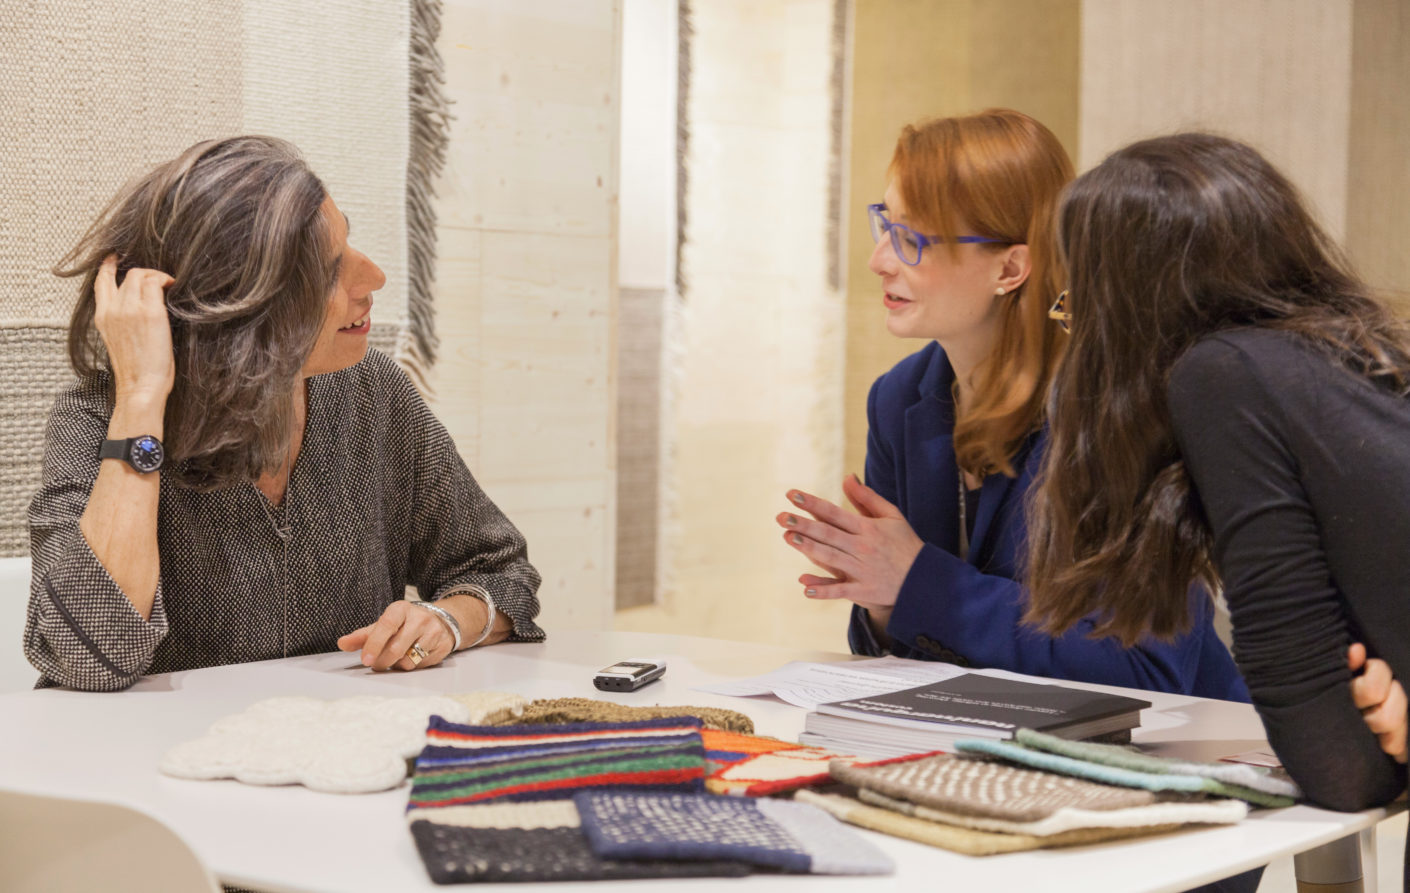 A three-way chat: Anna Moldenhauer in conversation with Nani Marquina (on the l.) and Lucia de la Rosa at the Nani Marquina booth at the imm cologne.